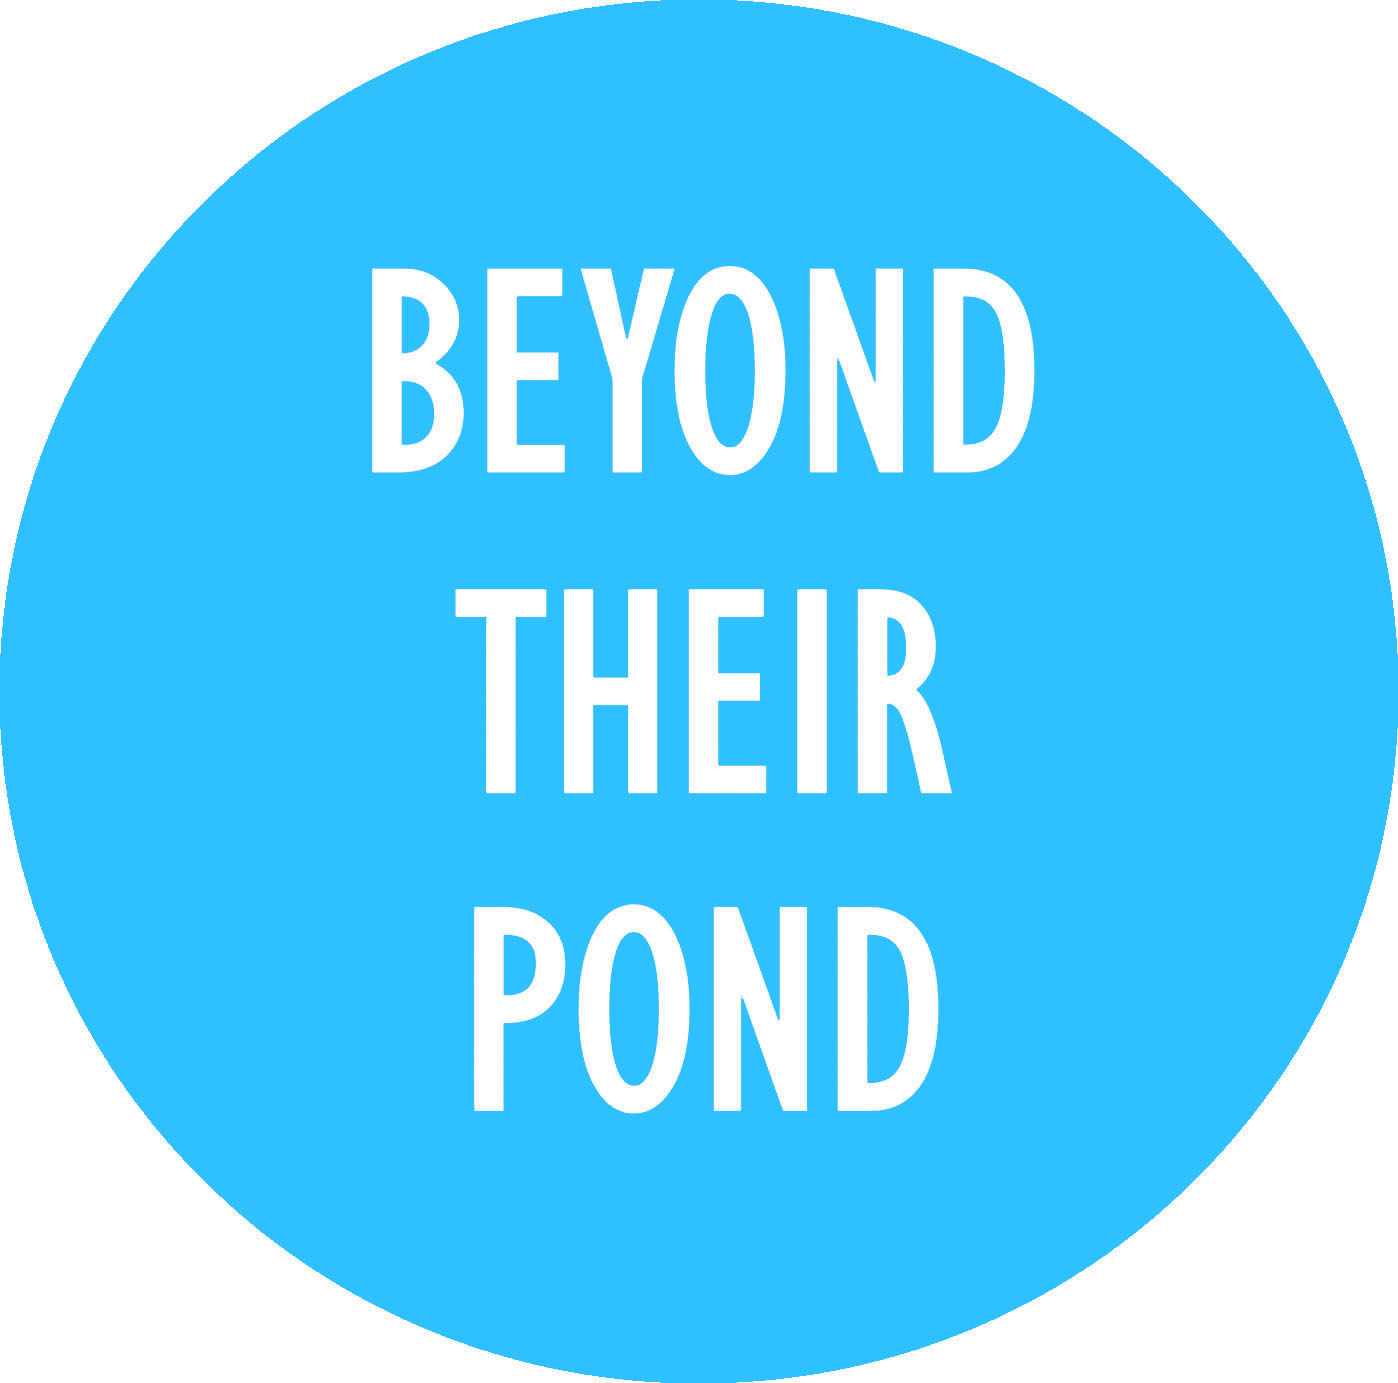 Beyond Their Pond, a cartoon about flamingos